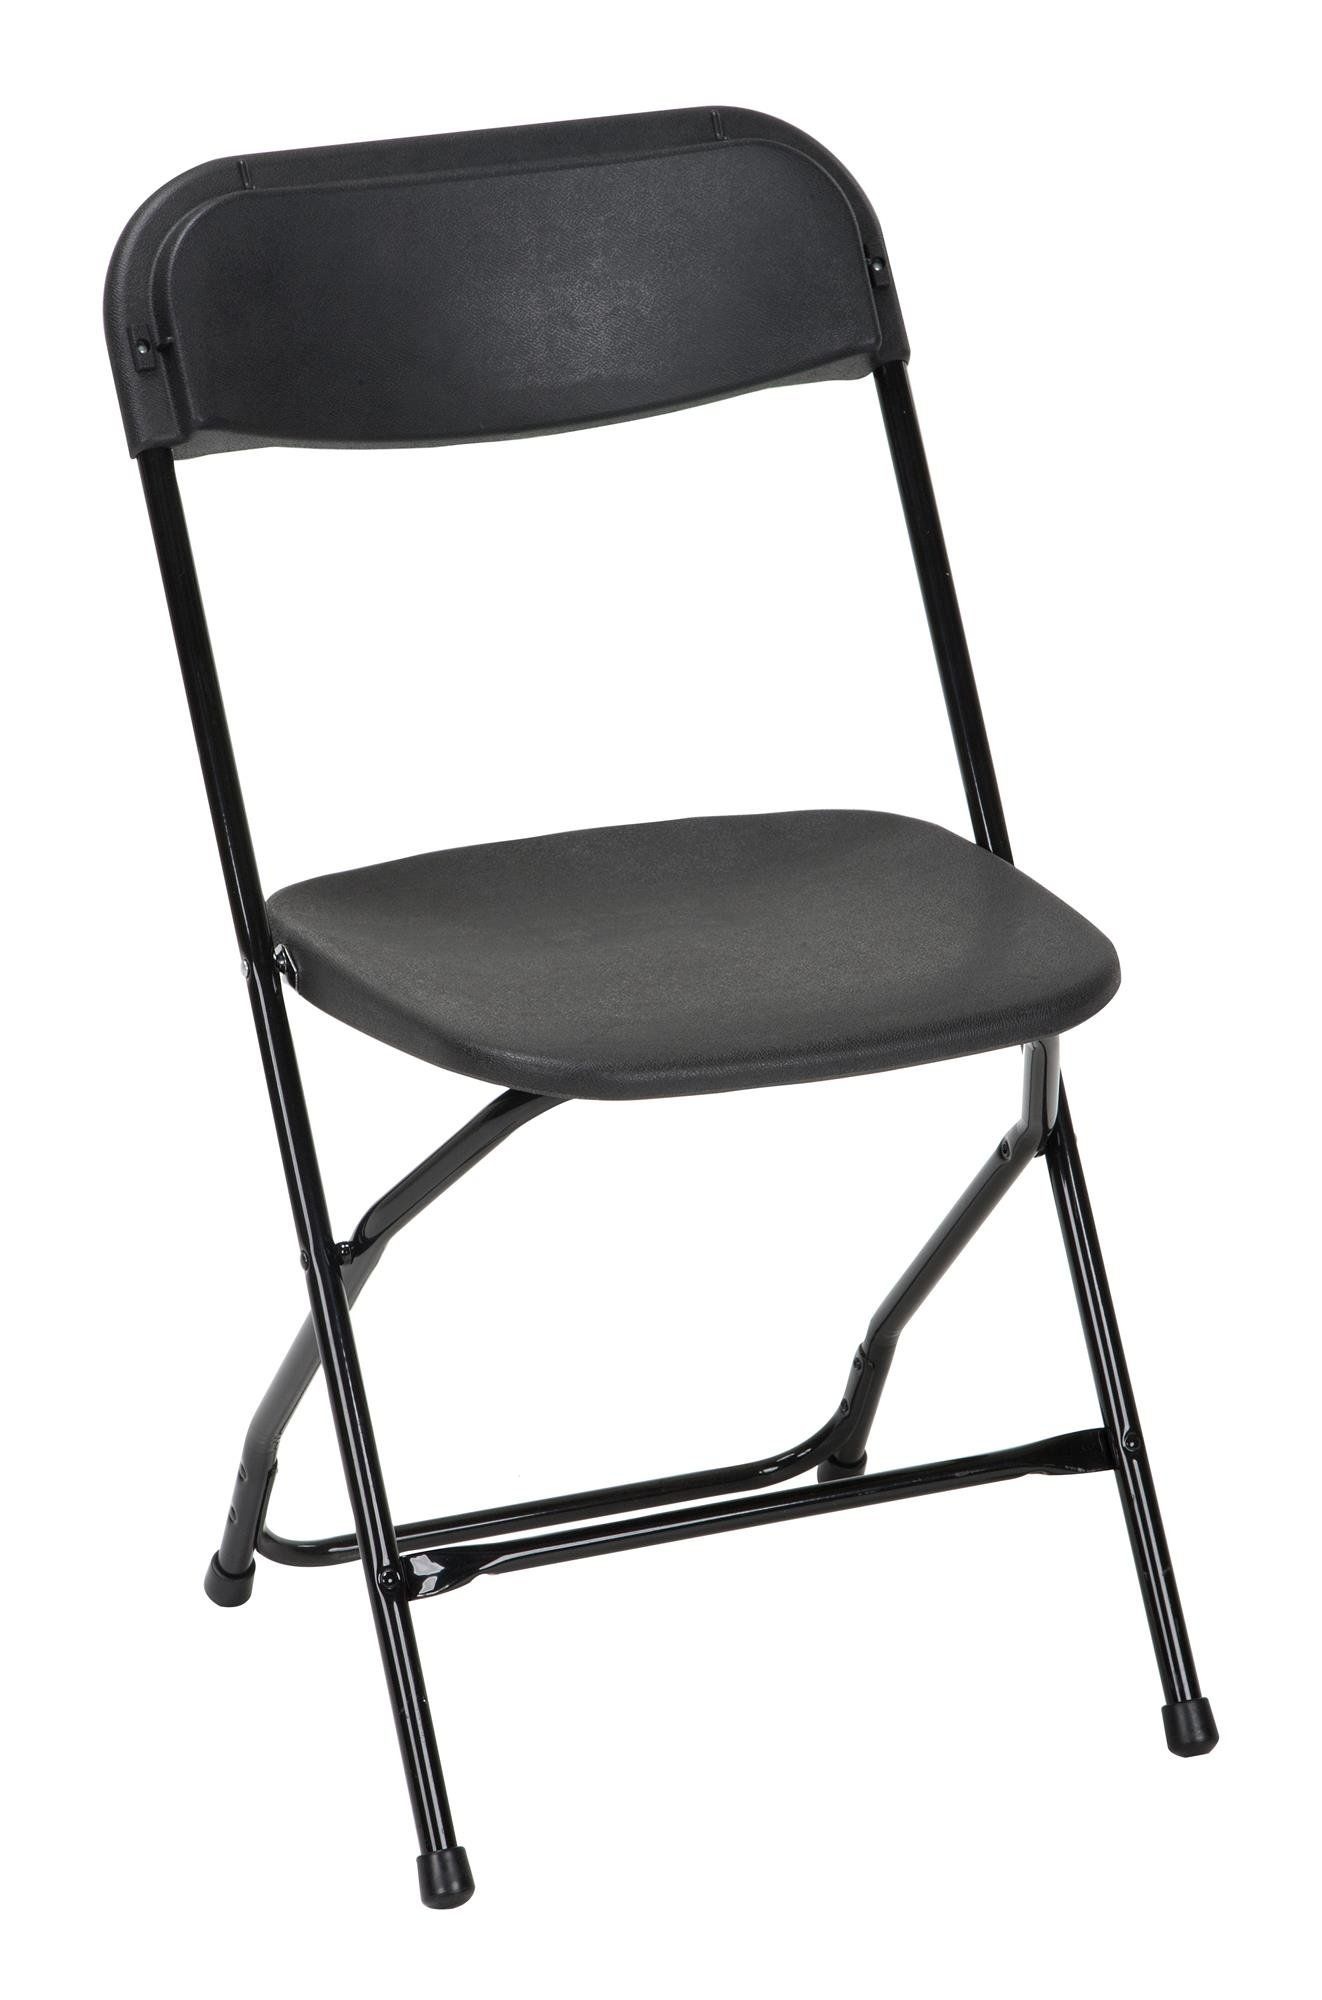 cosco commercial heavy duty injection mold folding chair black 8 rh pinterest com